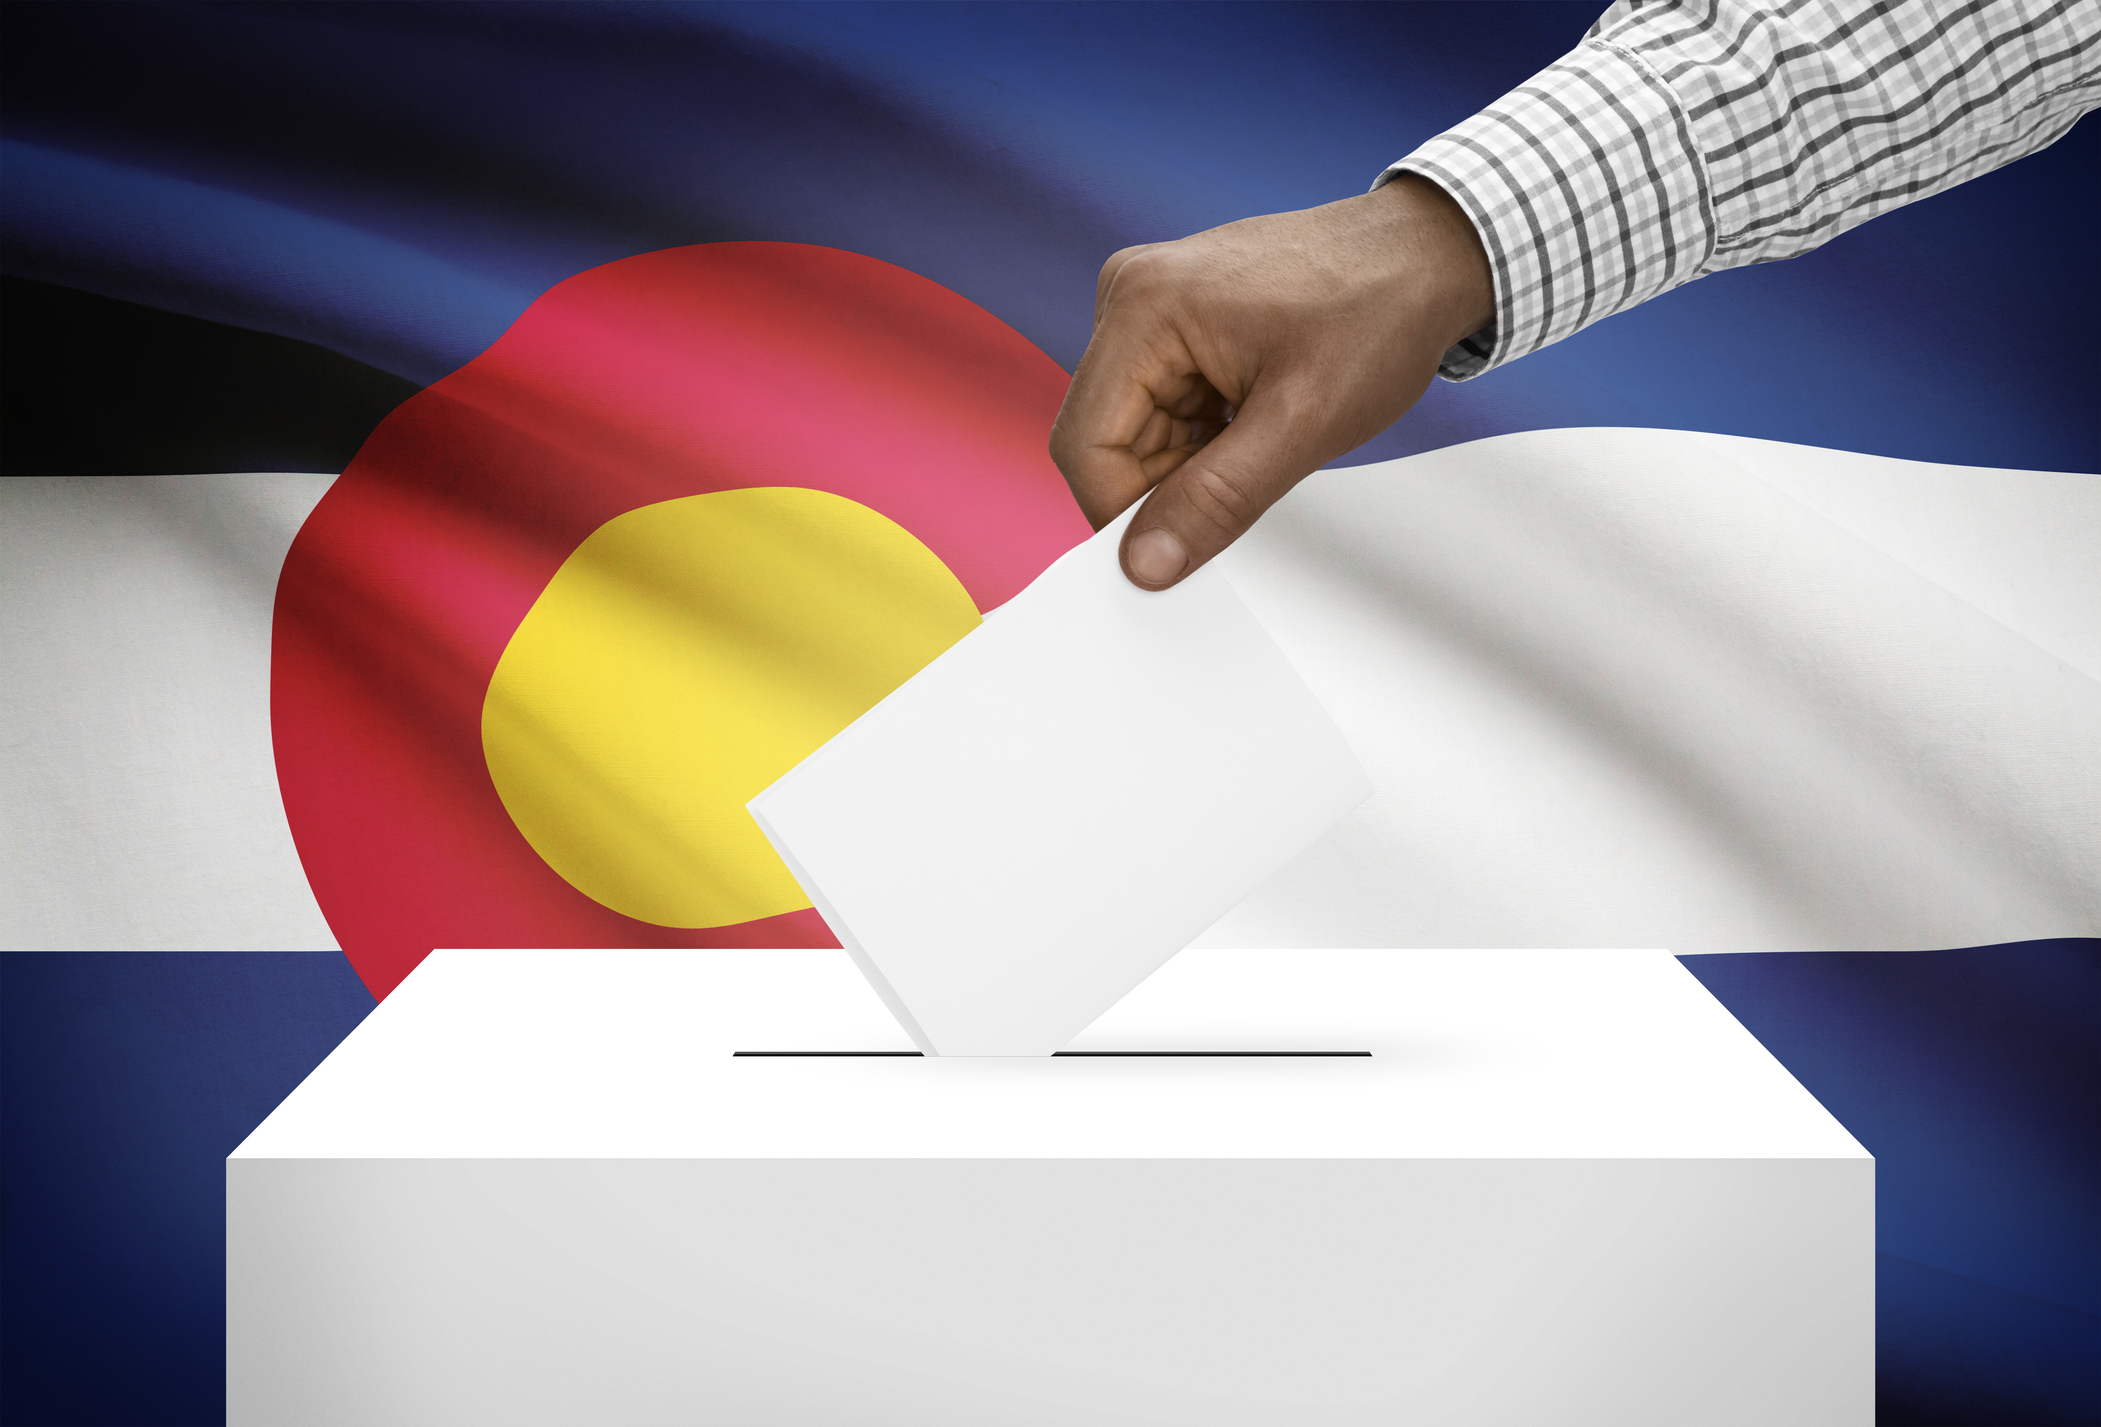 Ballot box with US state flag on background - Colorado